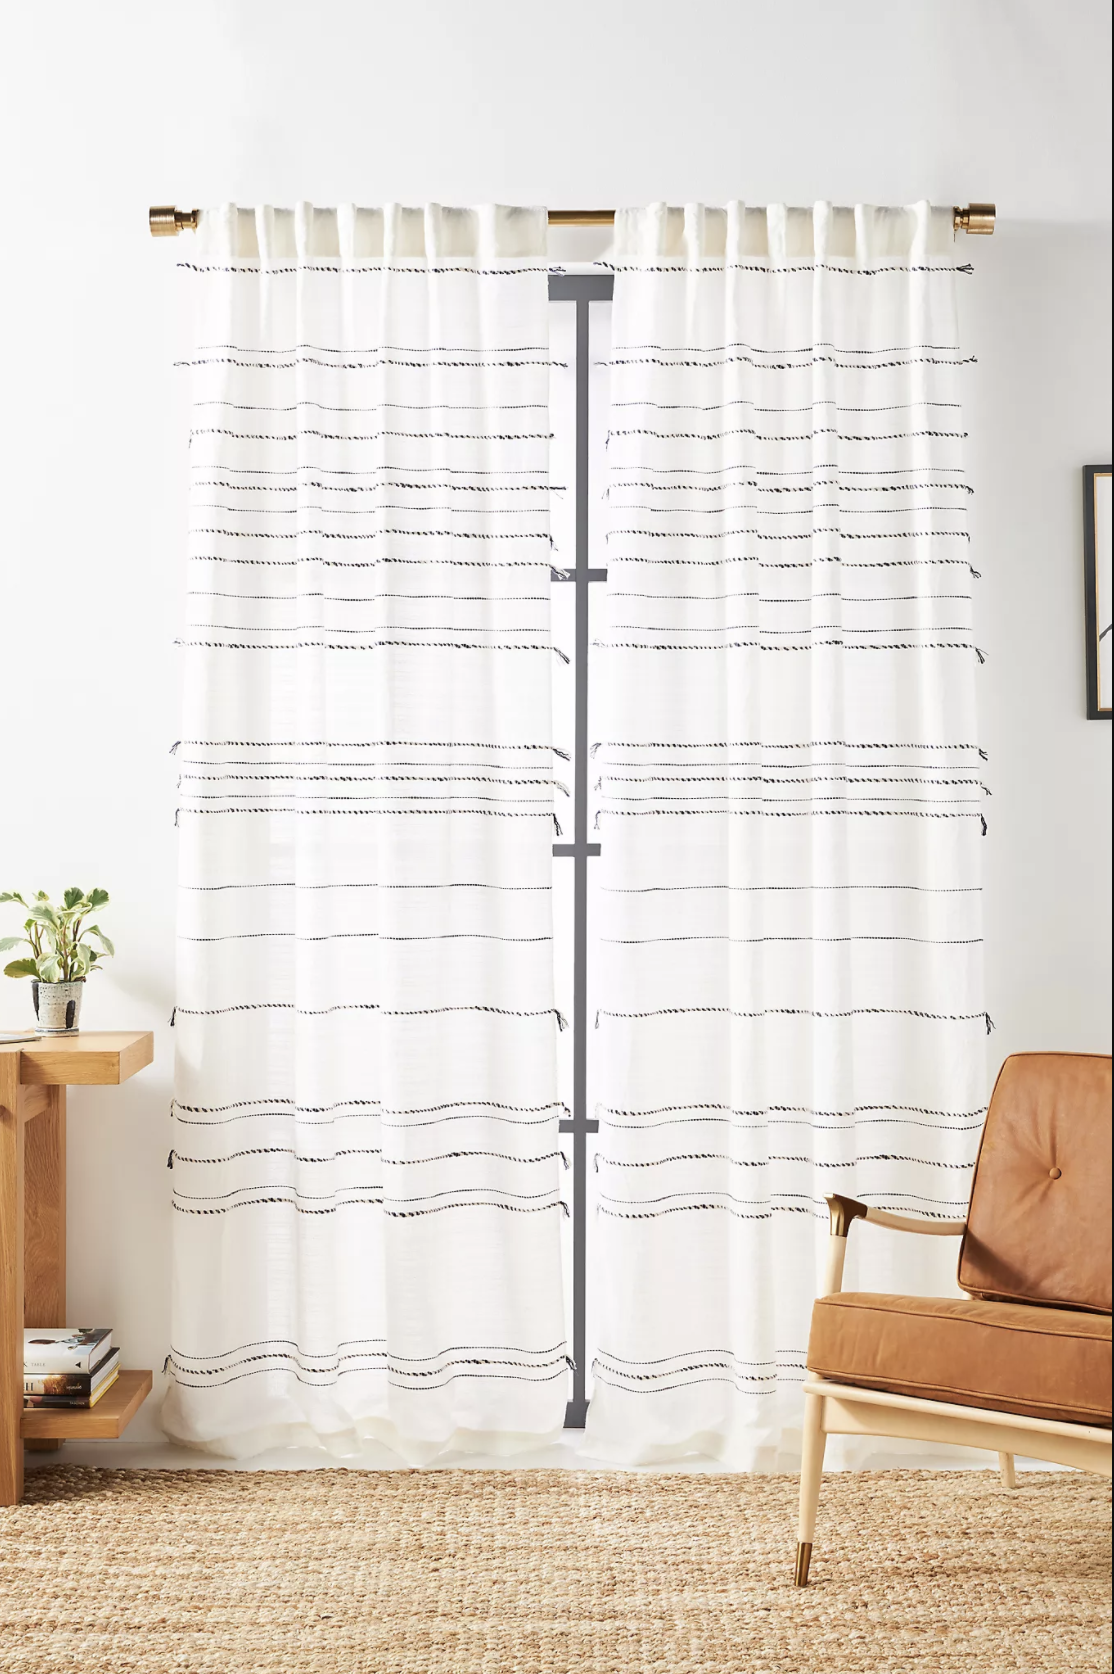 The curtains in a living room